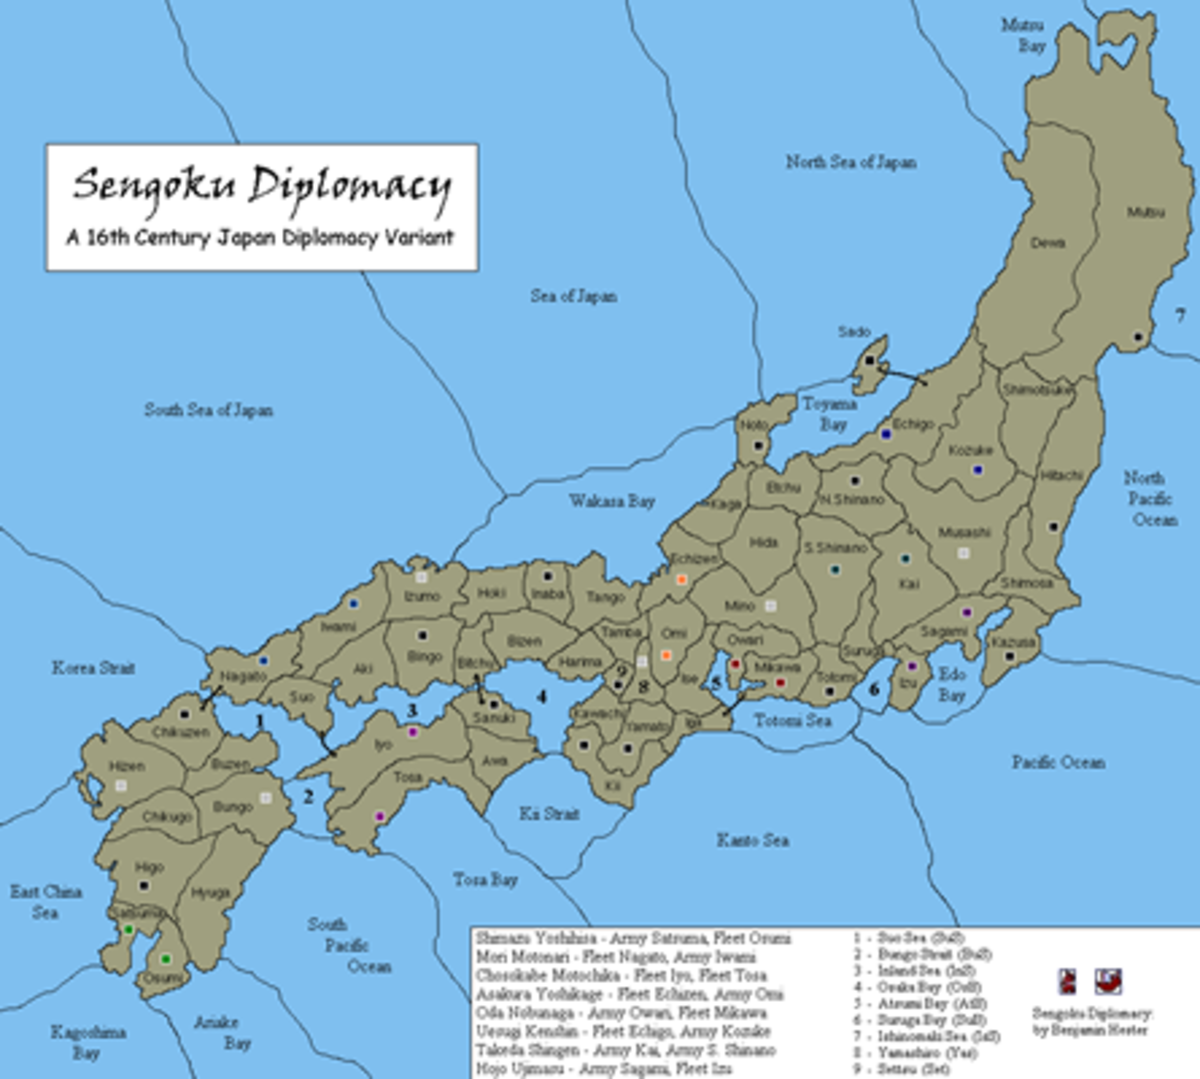 Warring States in 16th Century Japan